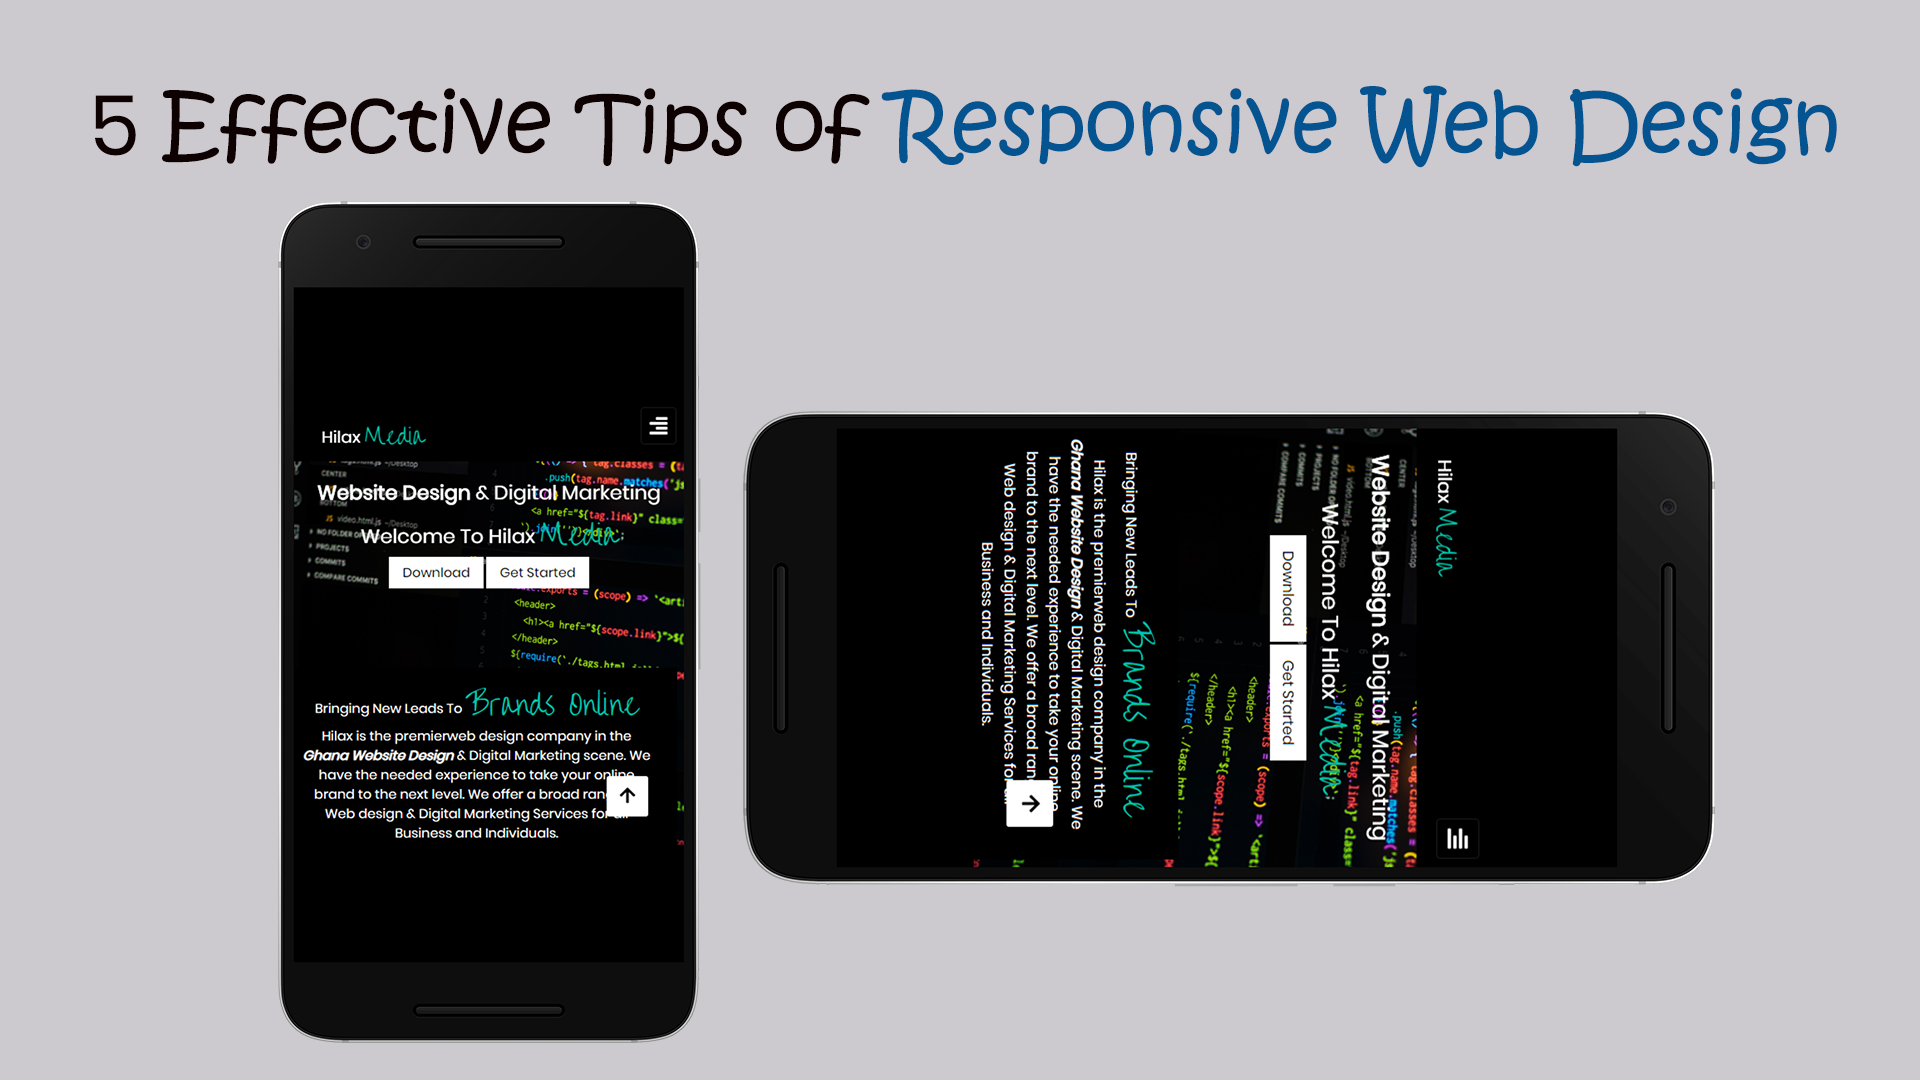 5 Effective Tips Of Responsive Web Design